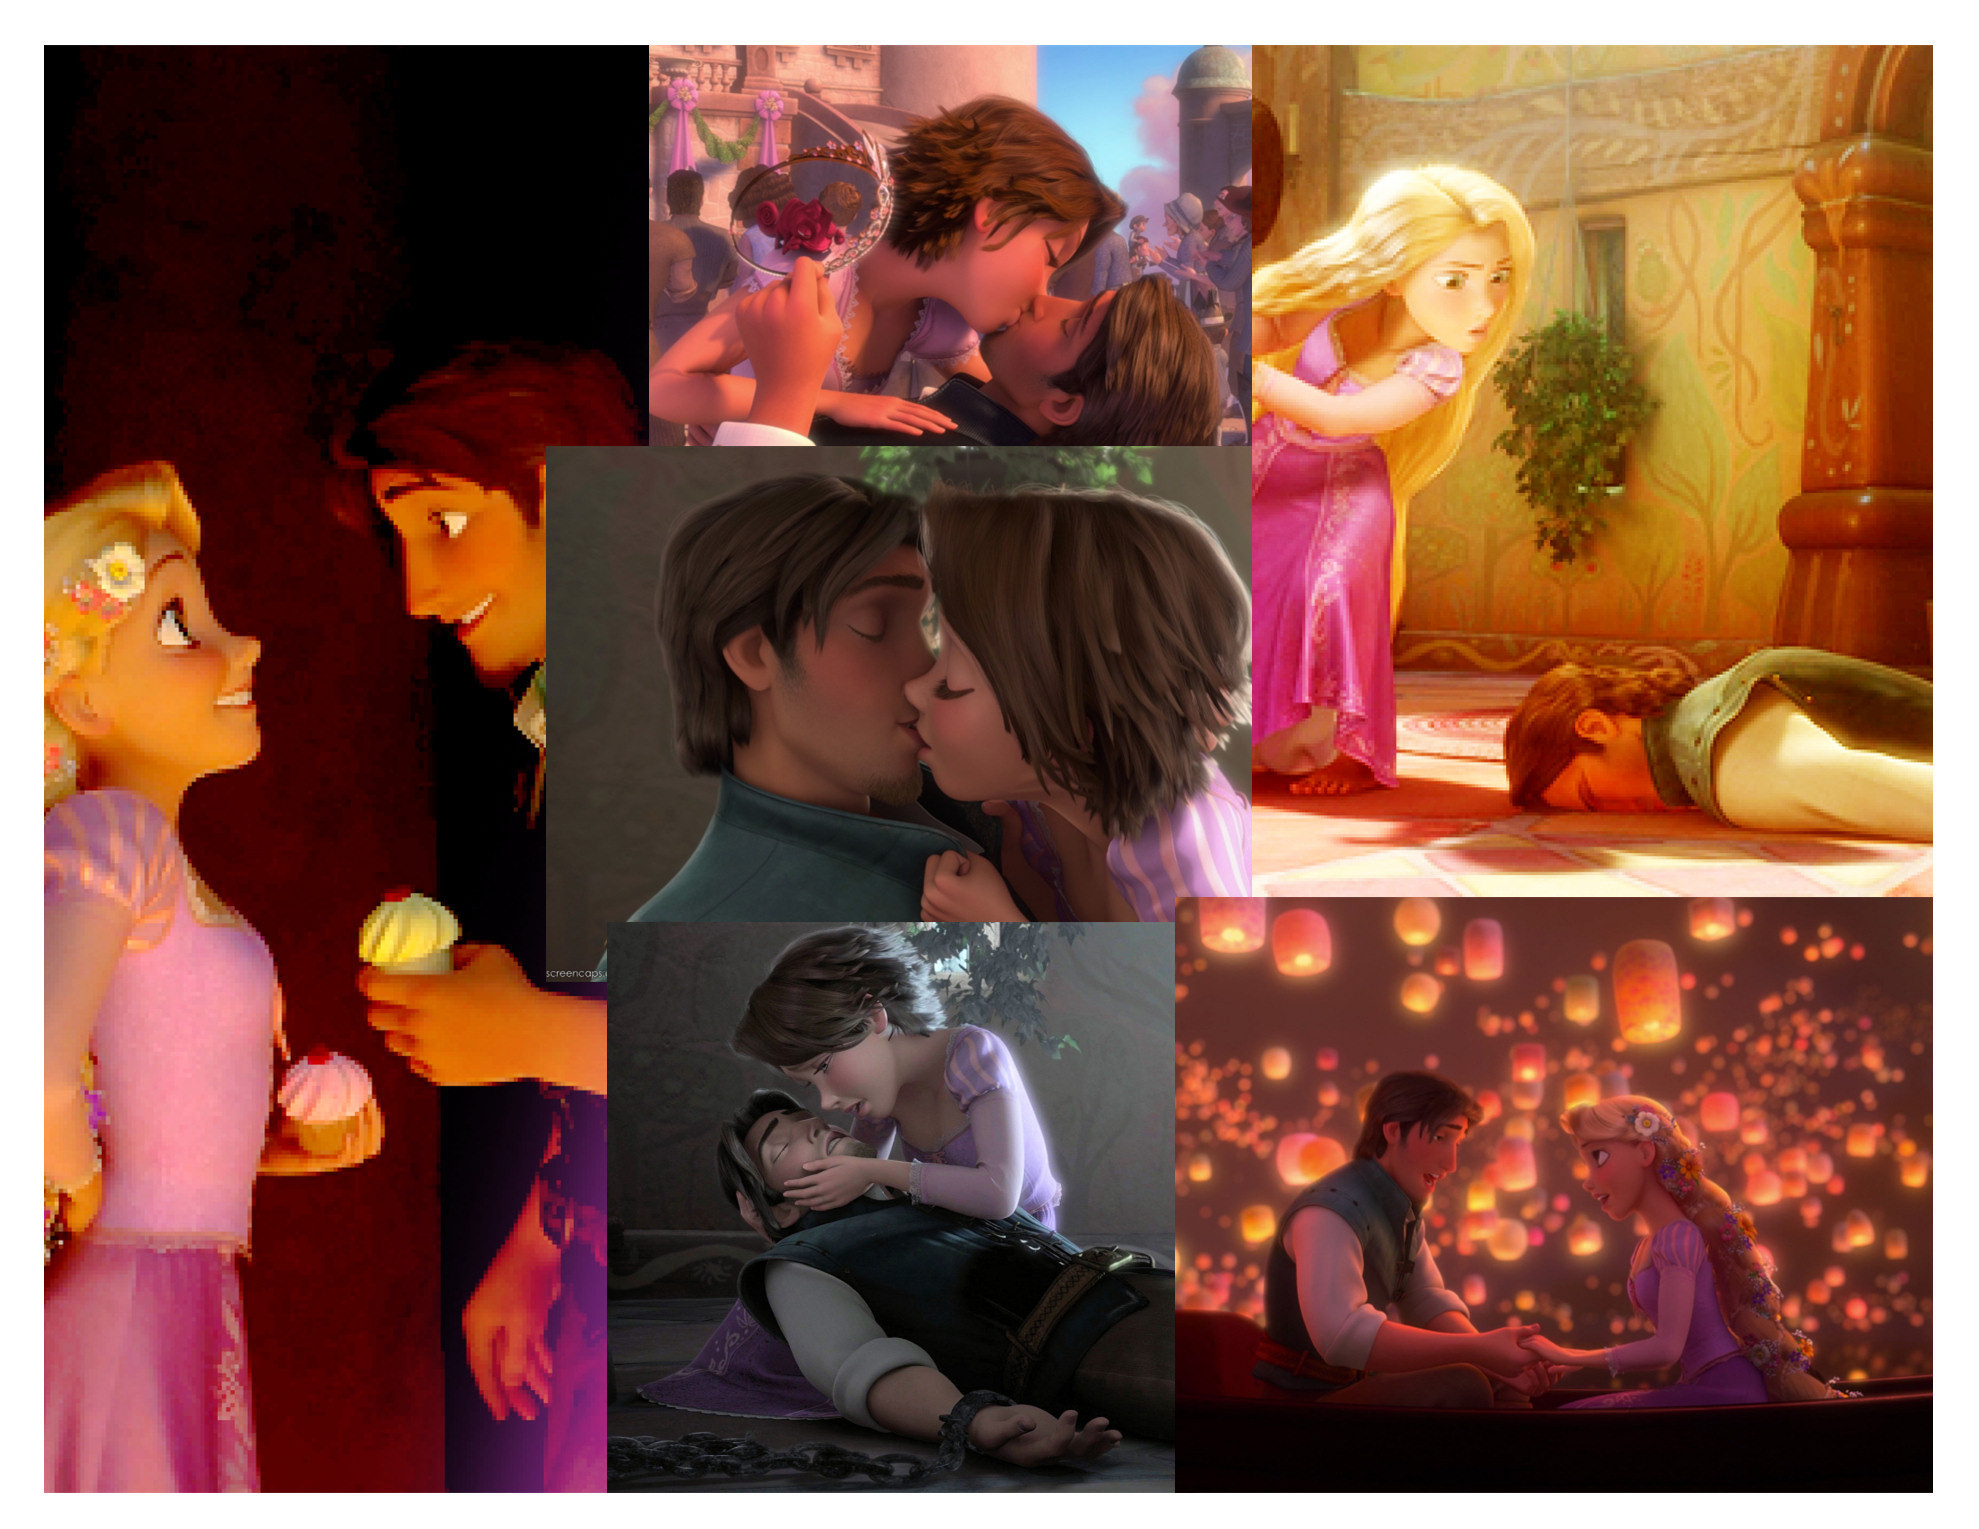 Tangled Images I Love HD Wallpaper And Background Photos